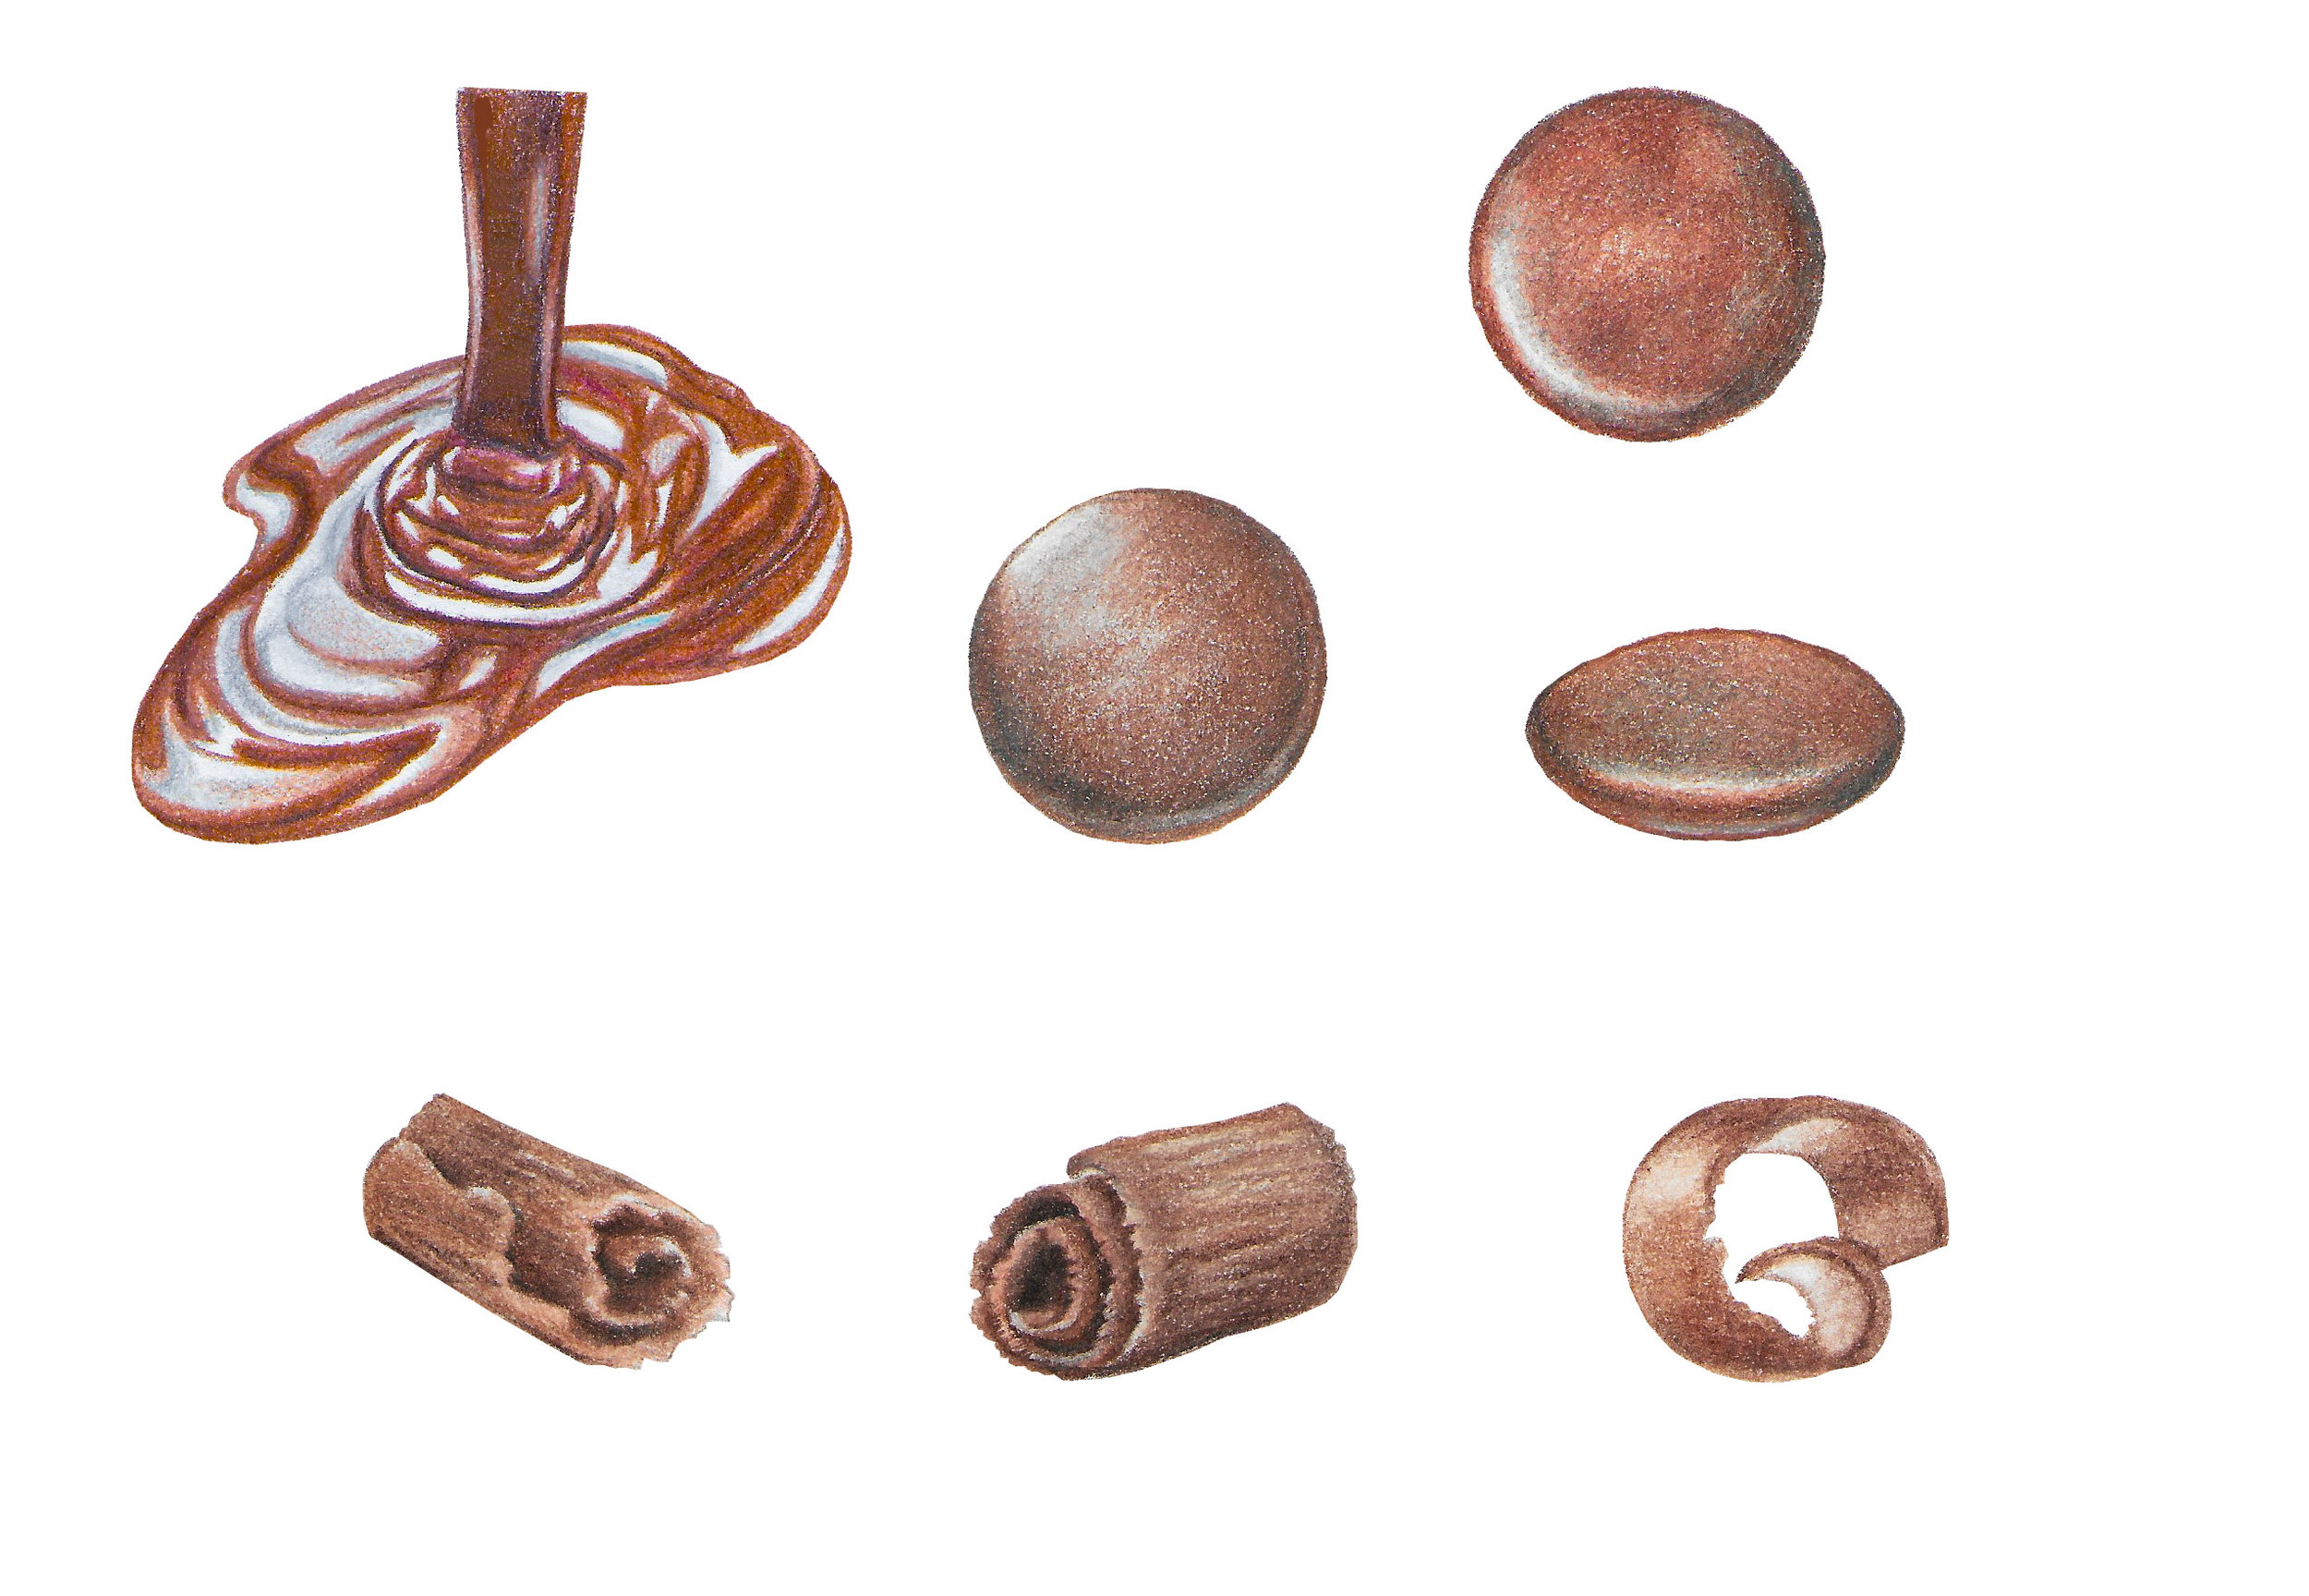 Illustrations for various forms of chocolate